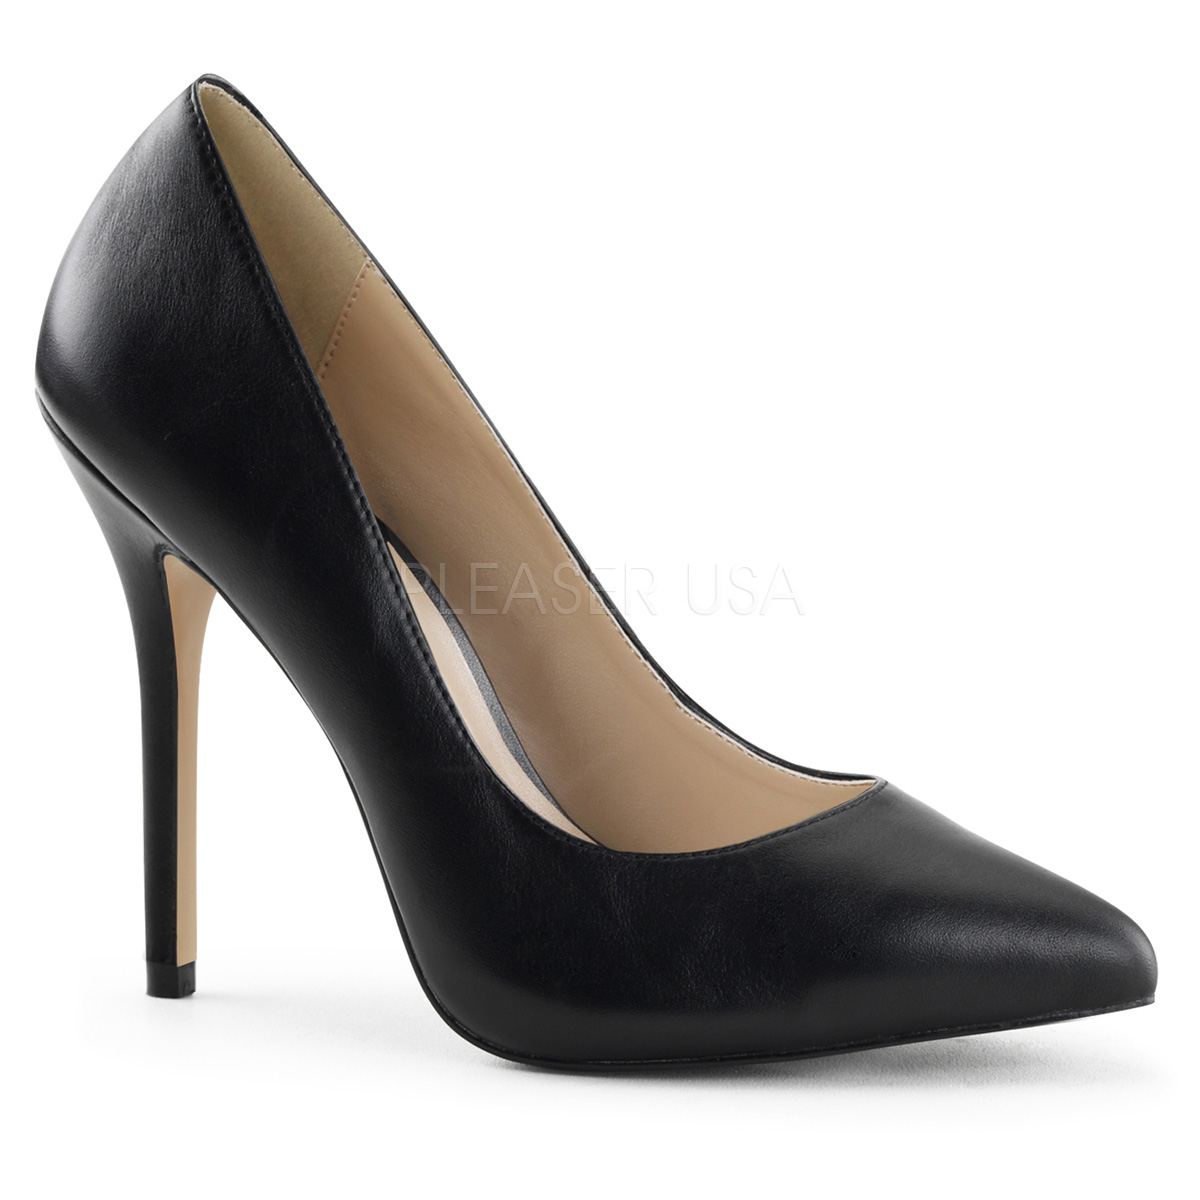 me-and-mrs-jones-amuse-20-black-matte